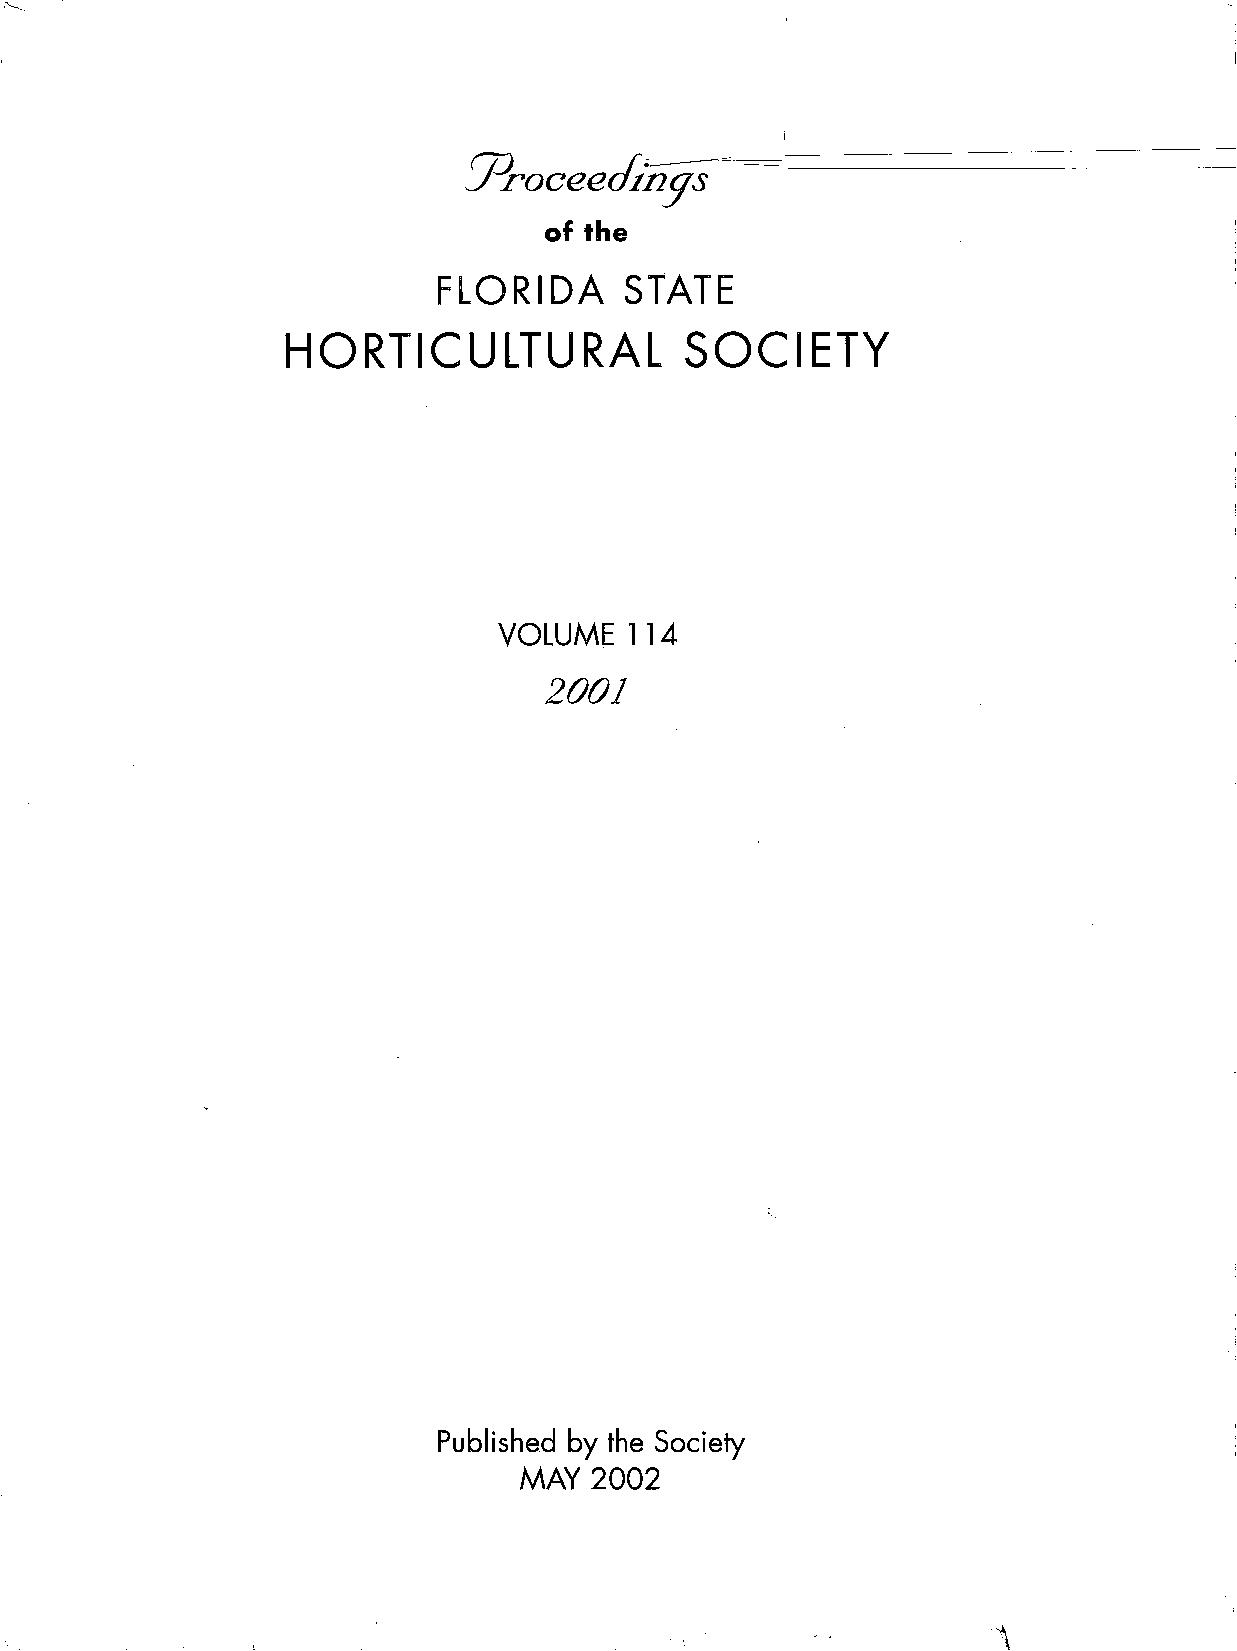 front cover of vol 114, 2001